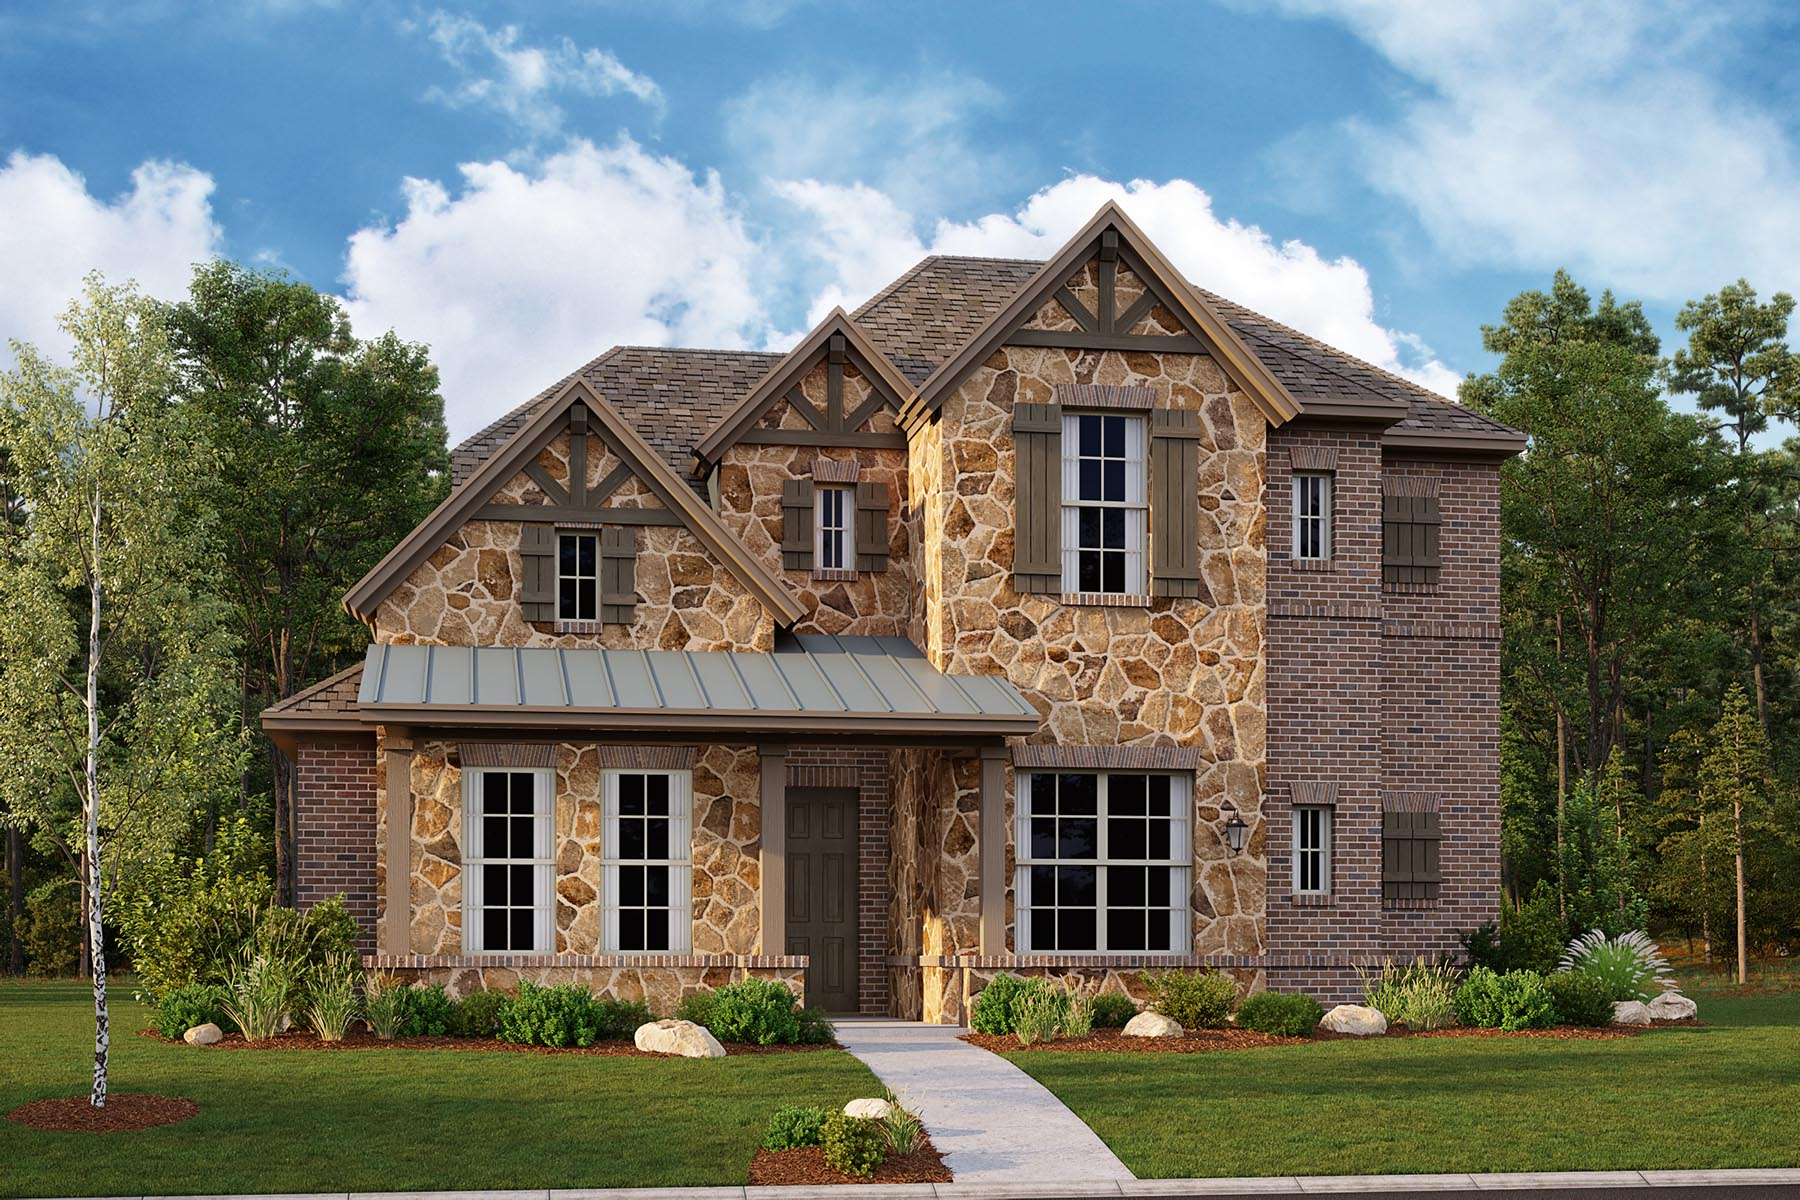 Oakhurst II Plan DAL_OakhurstII_E_ElevationExt_1800x1200 at Villages of Creekwood in Frisco Texas by Mattamy Homes